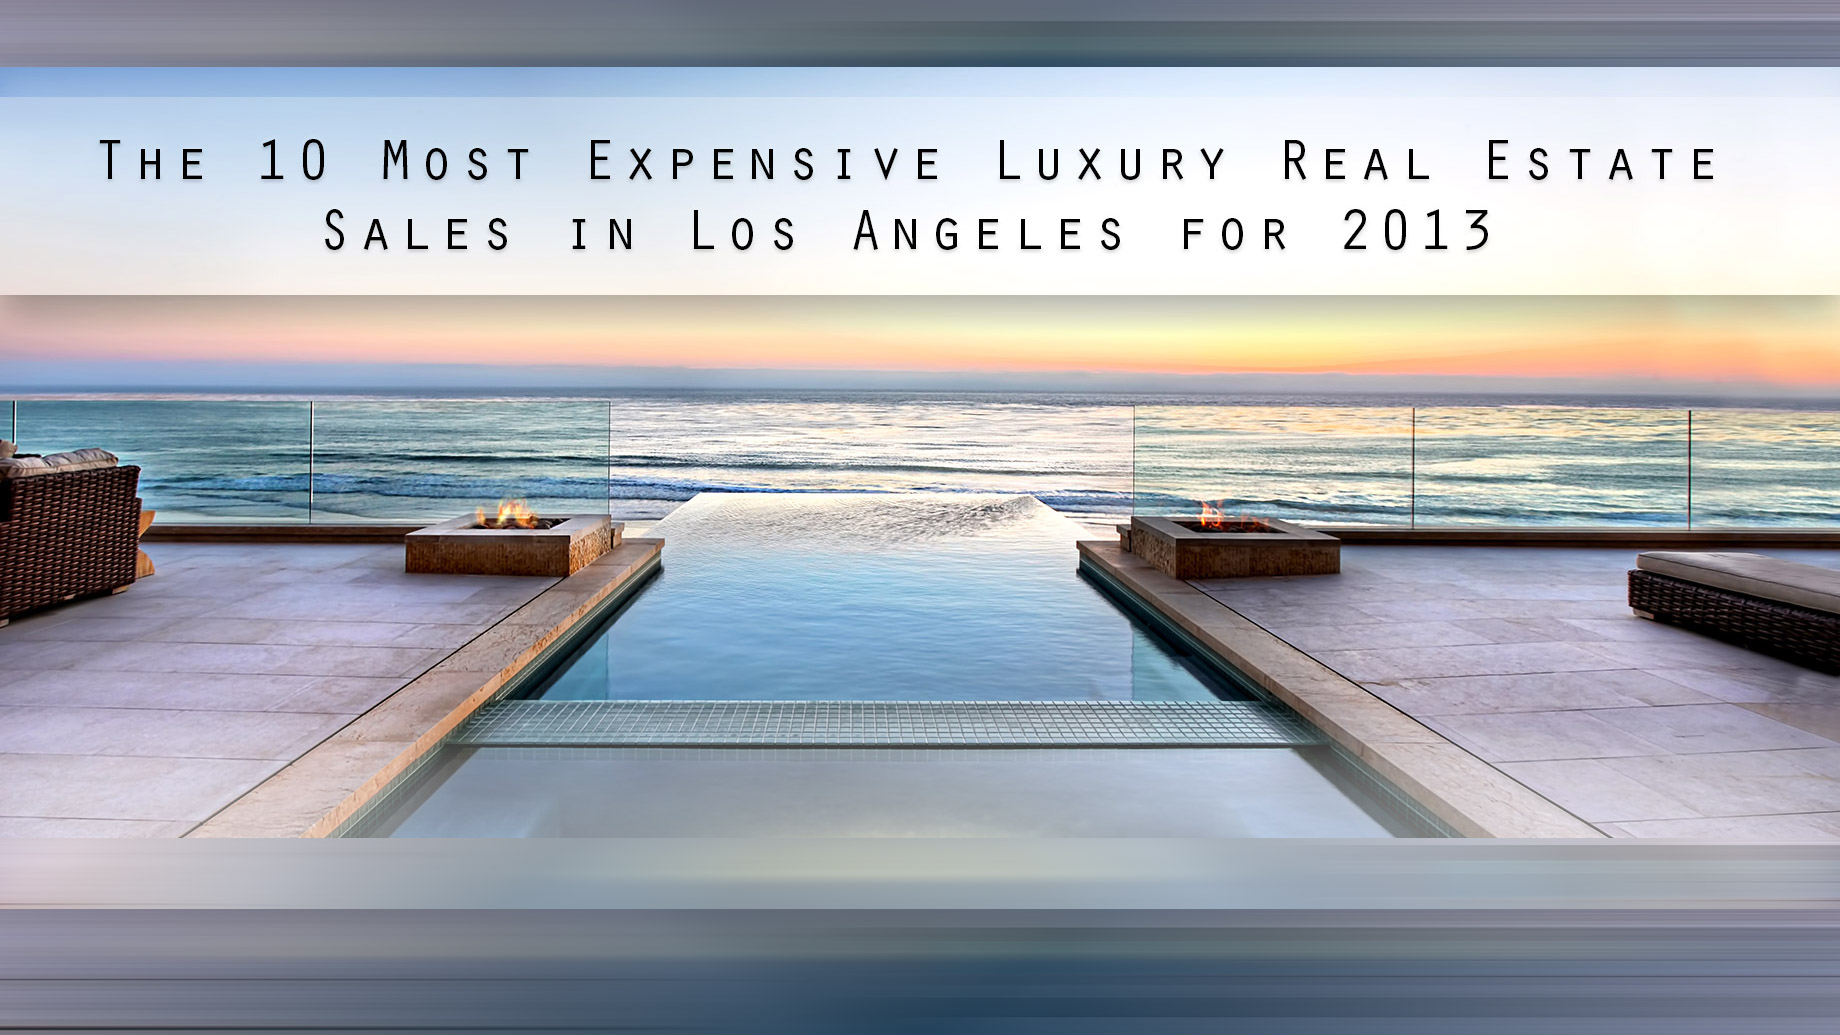 The 10 Most Expensive Luxury Real Estate Sales in Los Angeles for 2013